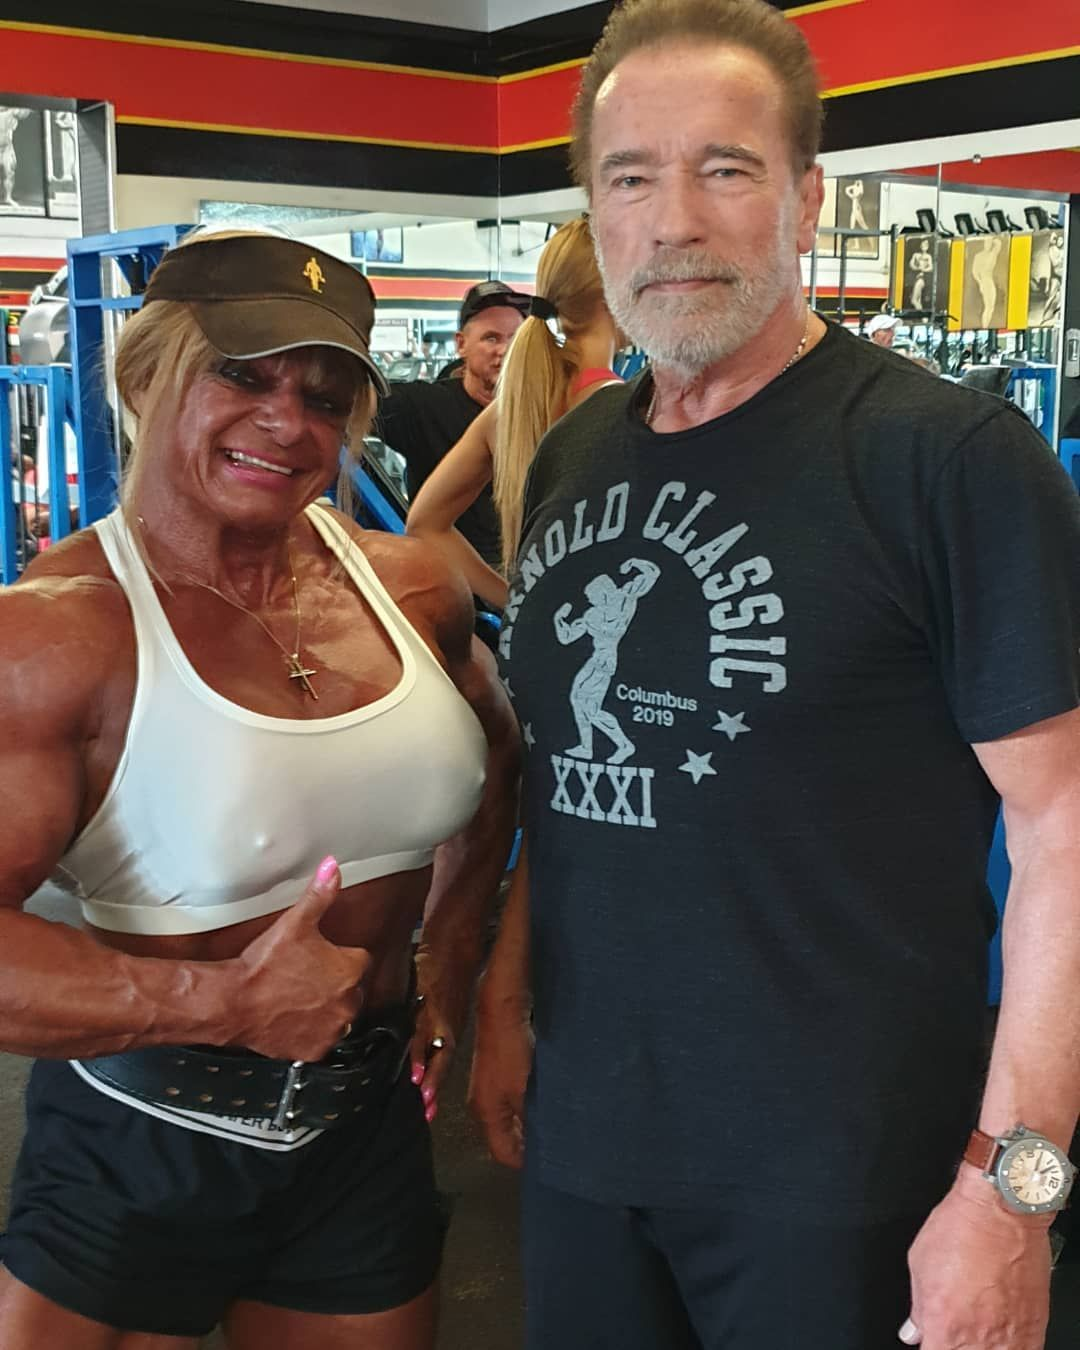 Arnold today at the Gold gym Venice I m Happy @evolutionproteine @sportproteinshop@gymstreetwazemmes...